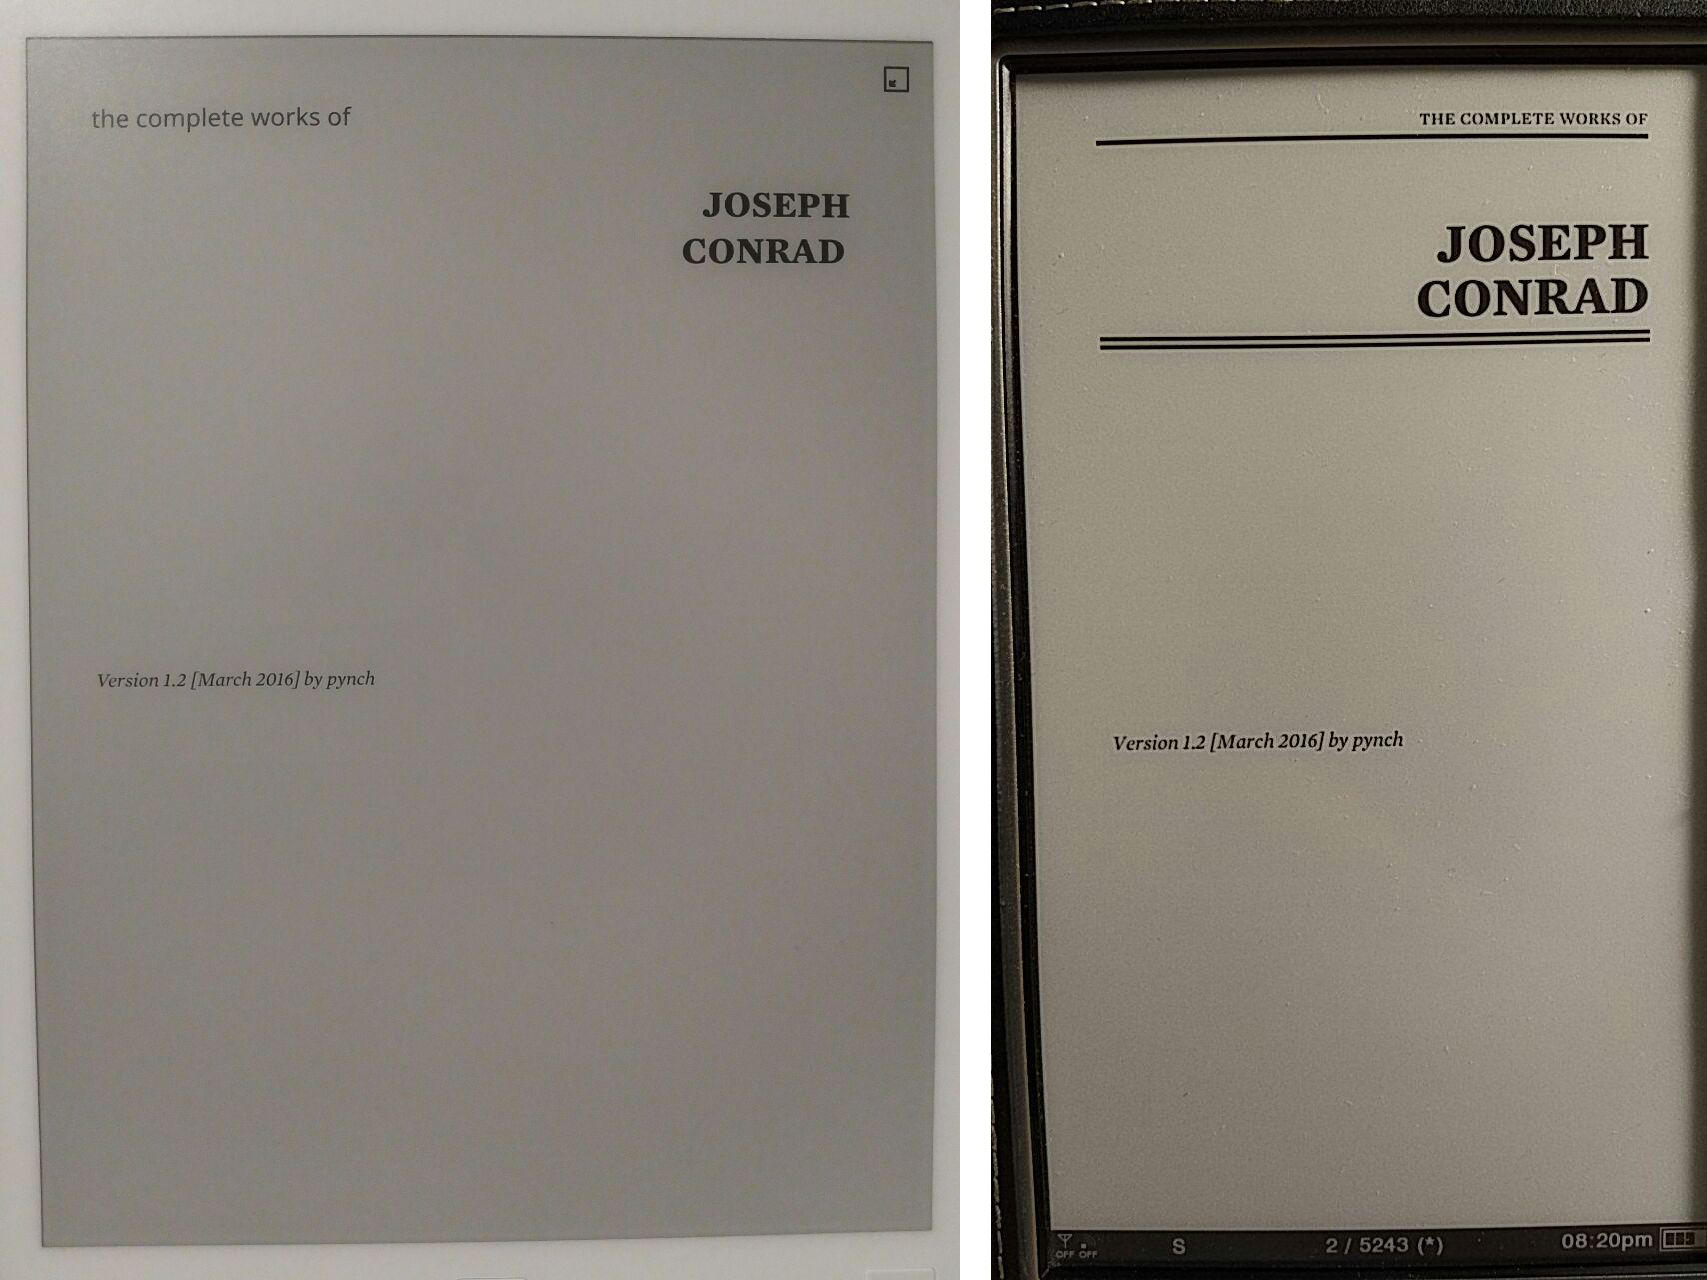 Nothing remarkable about the remarkable paper tablet a disastrous the second page of the test file on remarkable left and sony daily edition right fandeluxe Images